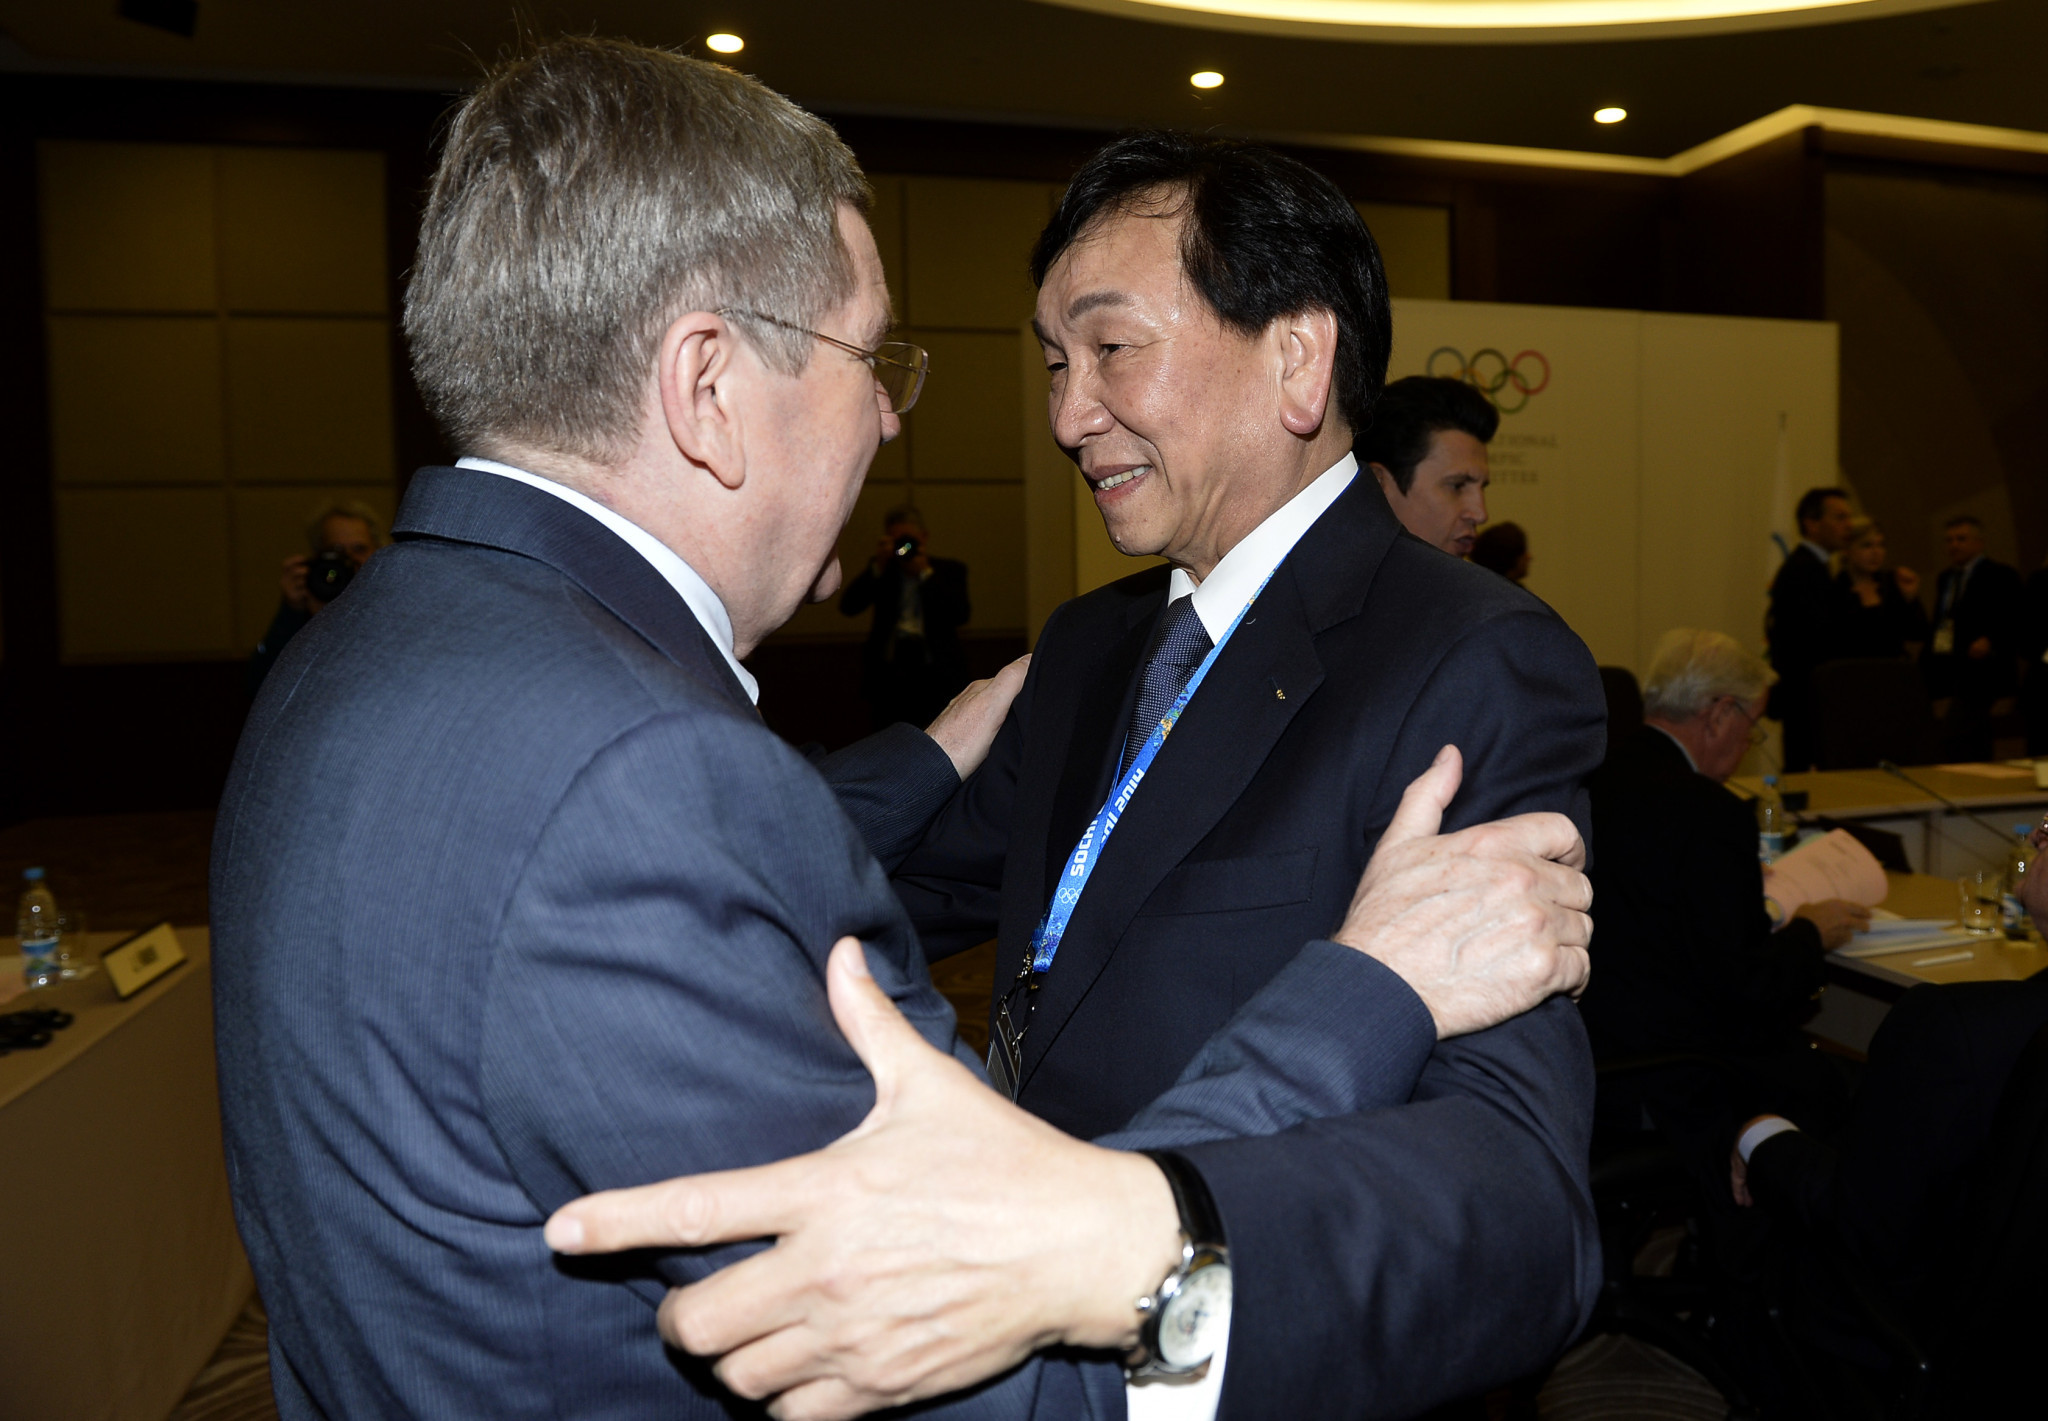 AIBA President C K Wu, right, alongside IOC counterpart Thomas Bach ©Getty Images